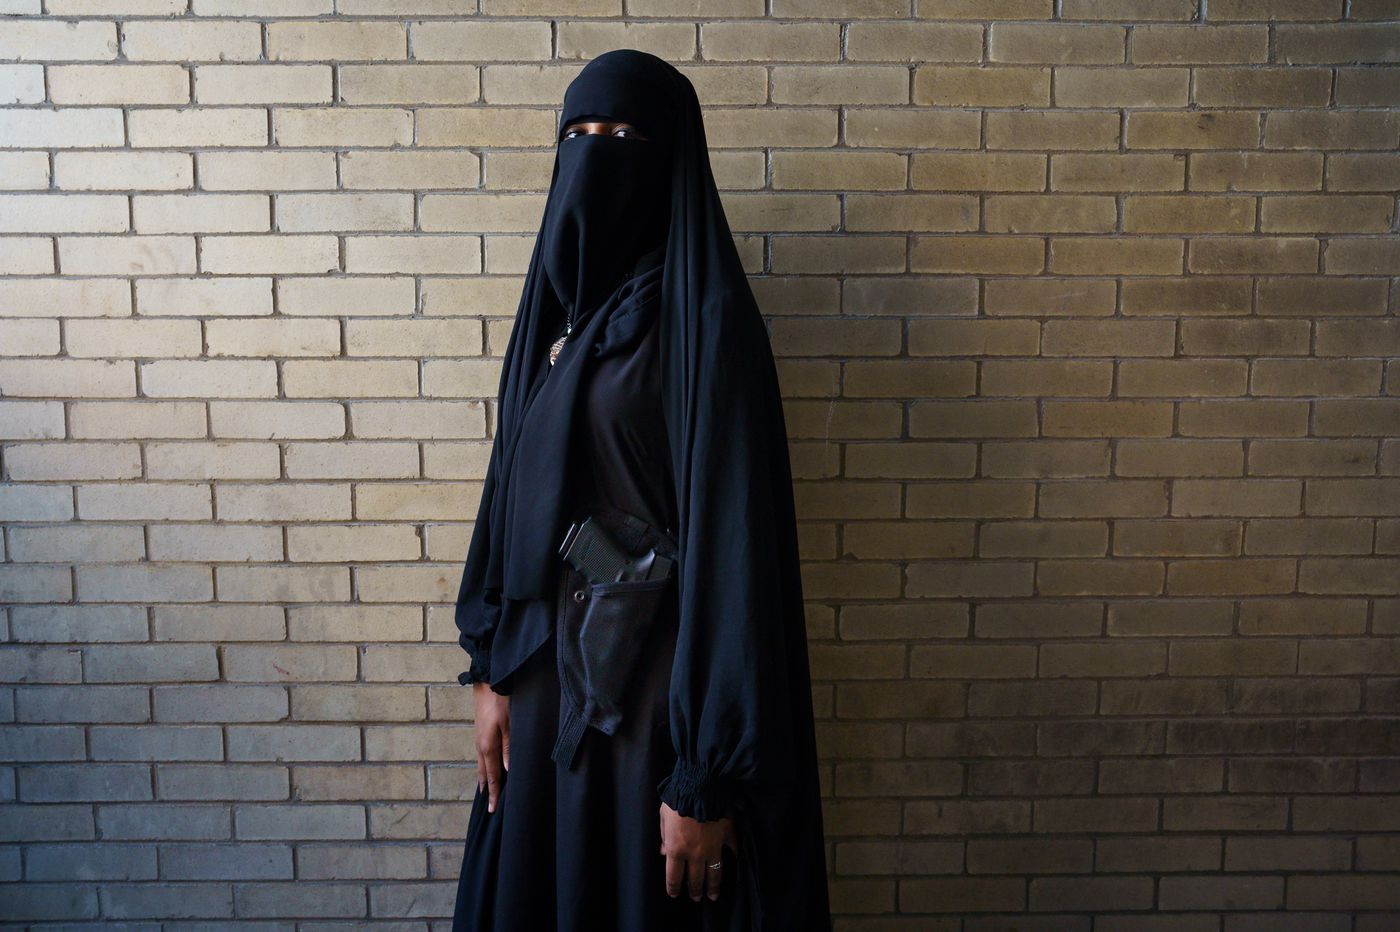 She's black, female, Muslim, covered — and licensed to carry | Jenice Armstrong